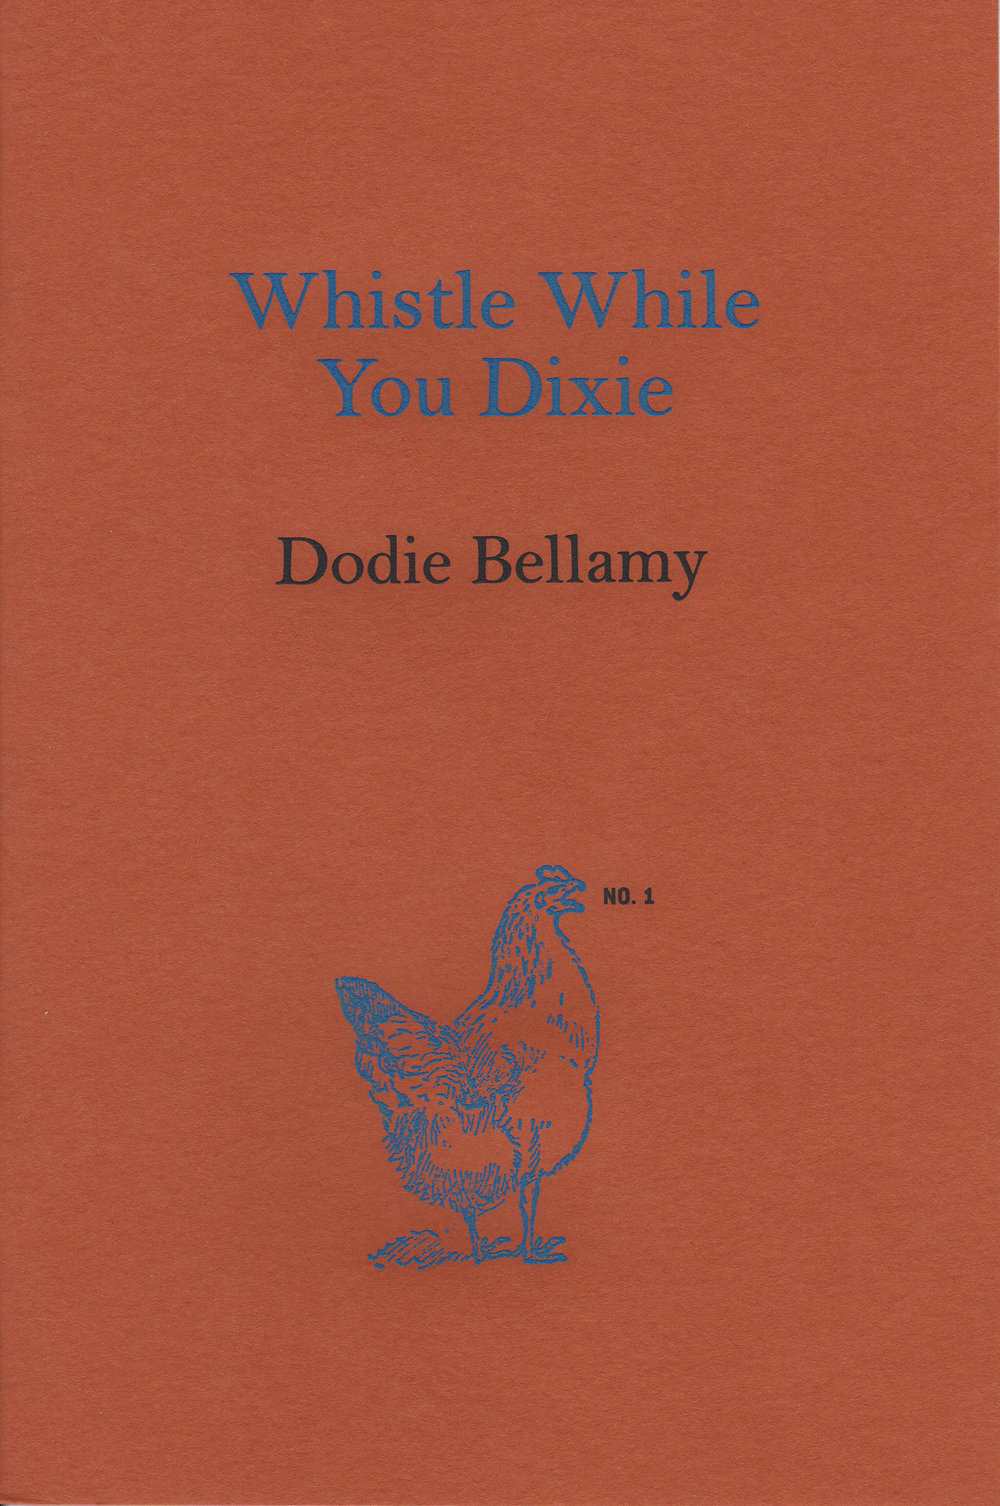 Whistle While You Dixie  by Dodie Bellamy, 2010 Offset lithography, engraved cover, 6.75 x 4.5 inches, 28 pages. Edition of 300 Designed by Susan Silton $35